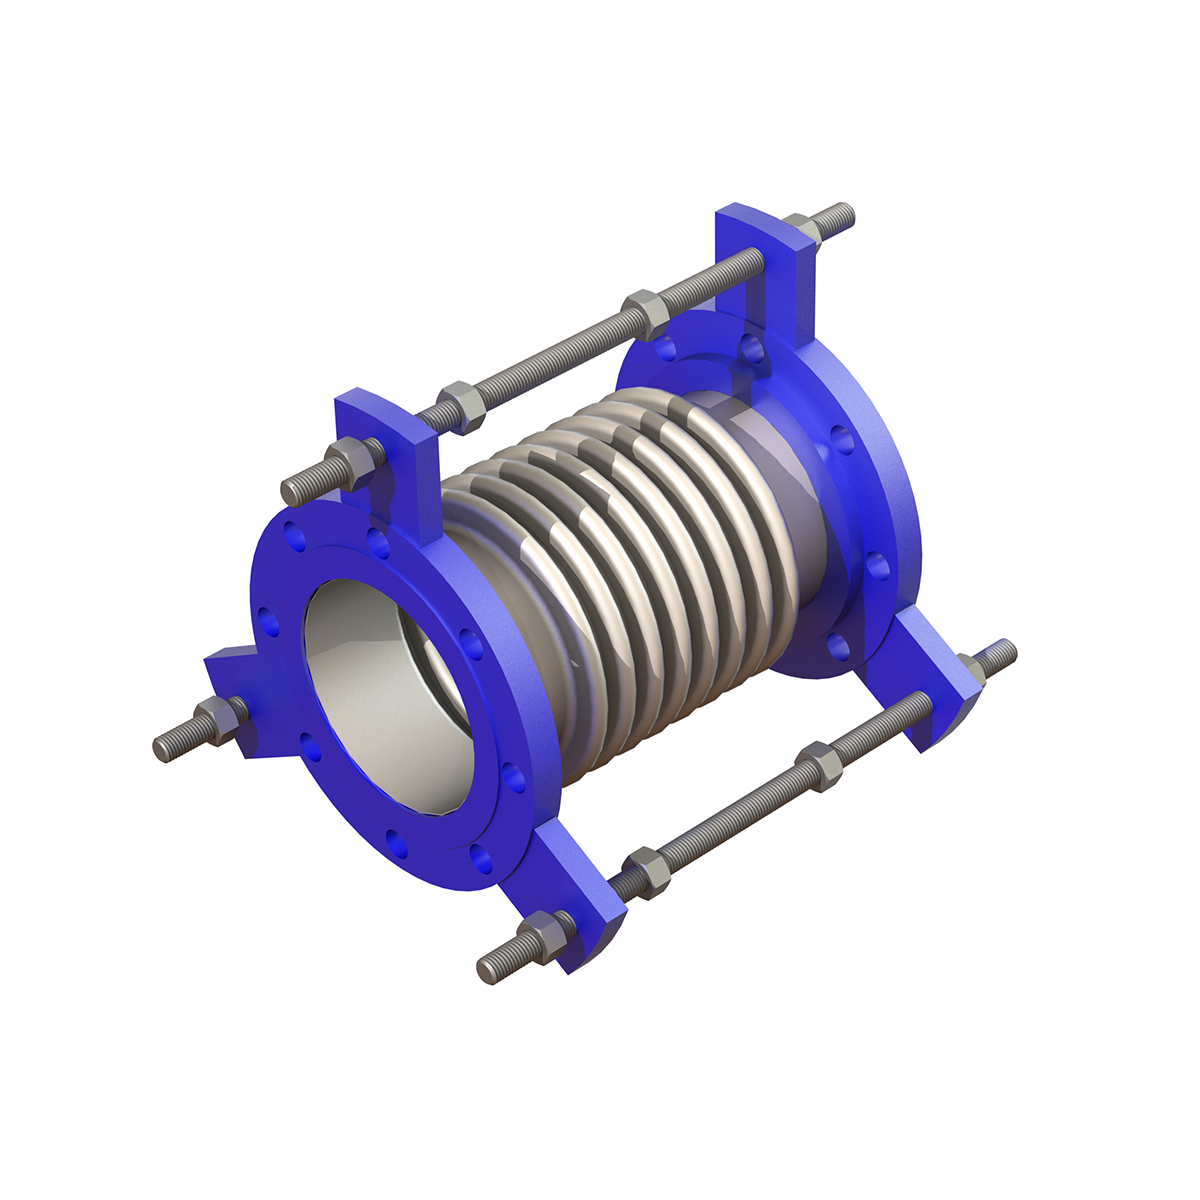 spool type metal bellows expansion joint with support rods